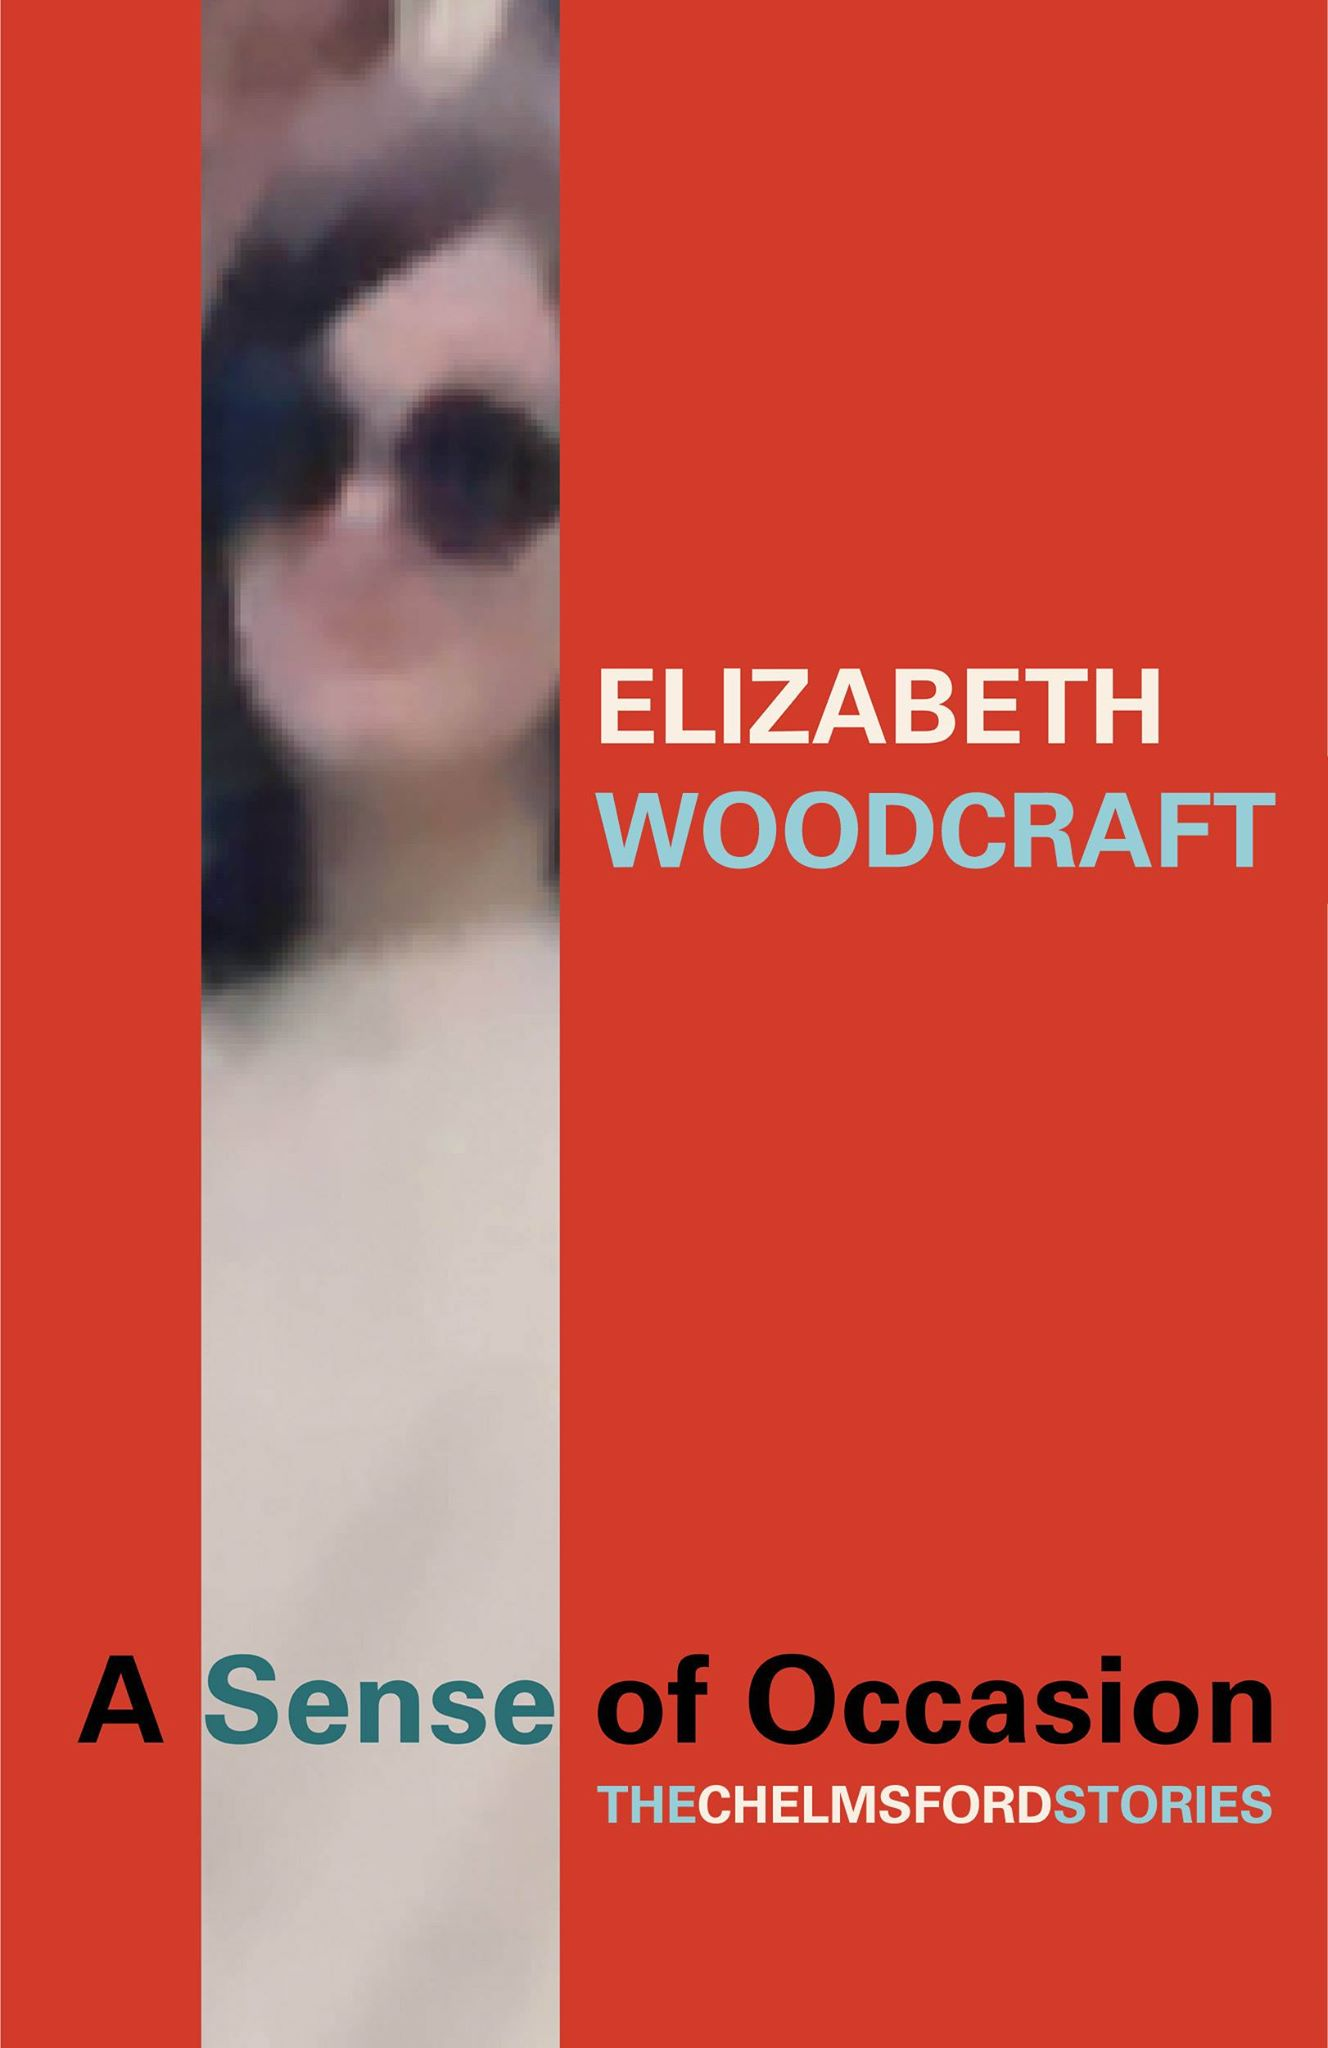 A Sense Of Occasion by Elizabeth Woodcraft